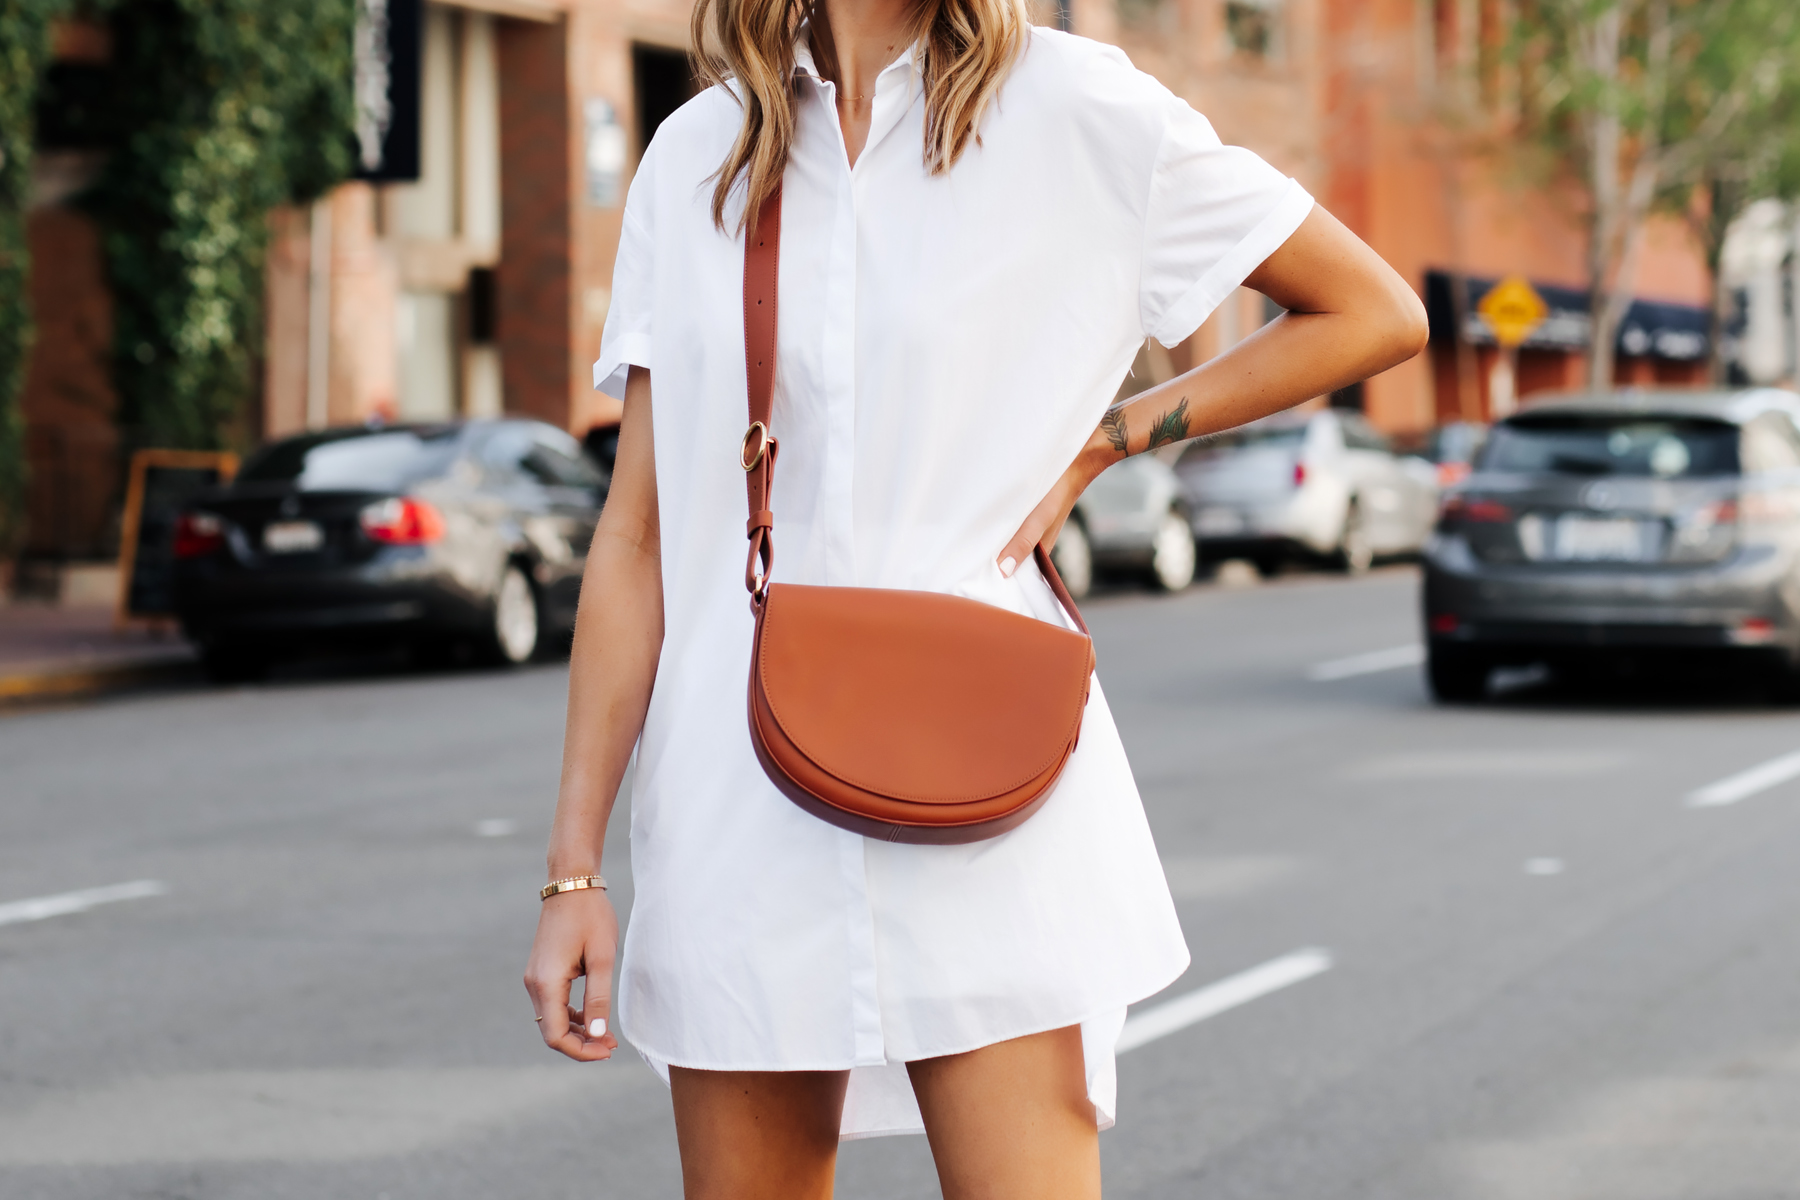 Blonde Woman Wearing White Shirtdress Cuyana Half Moon Bag Caramel Fashion Jackson San Diego Fashion Blogger Street Style